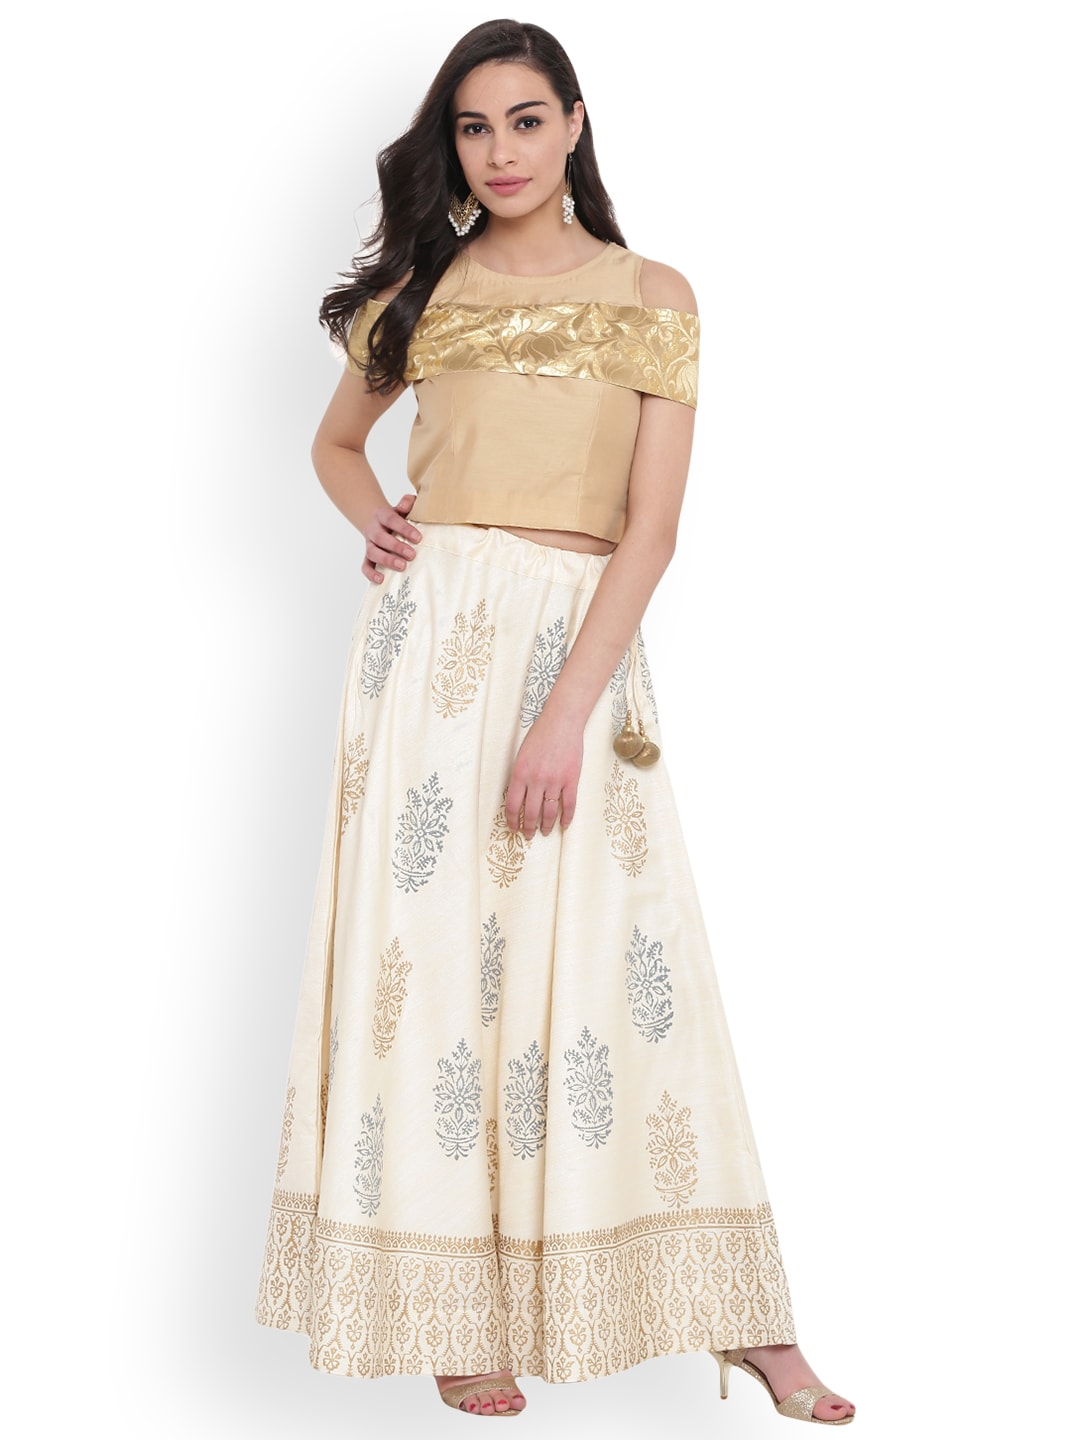 studio rasa Beige Ready to Wear Hand Block Print Lehenga with Blouse image